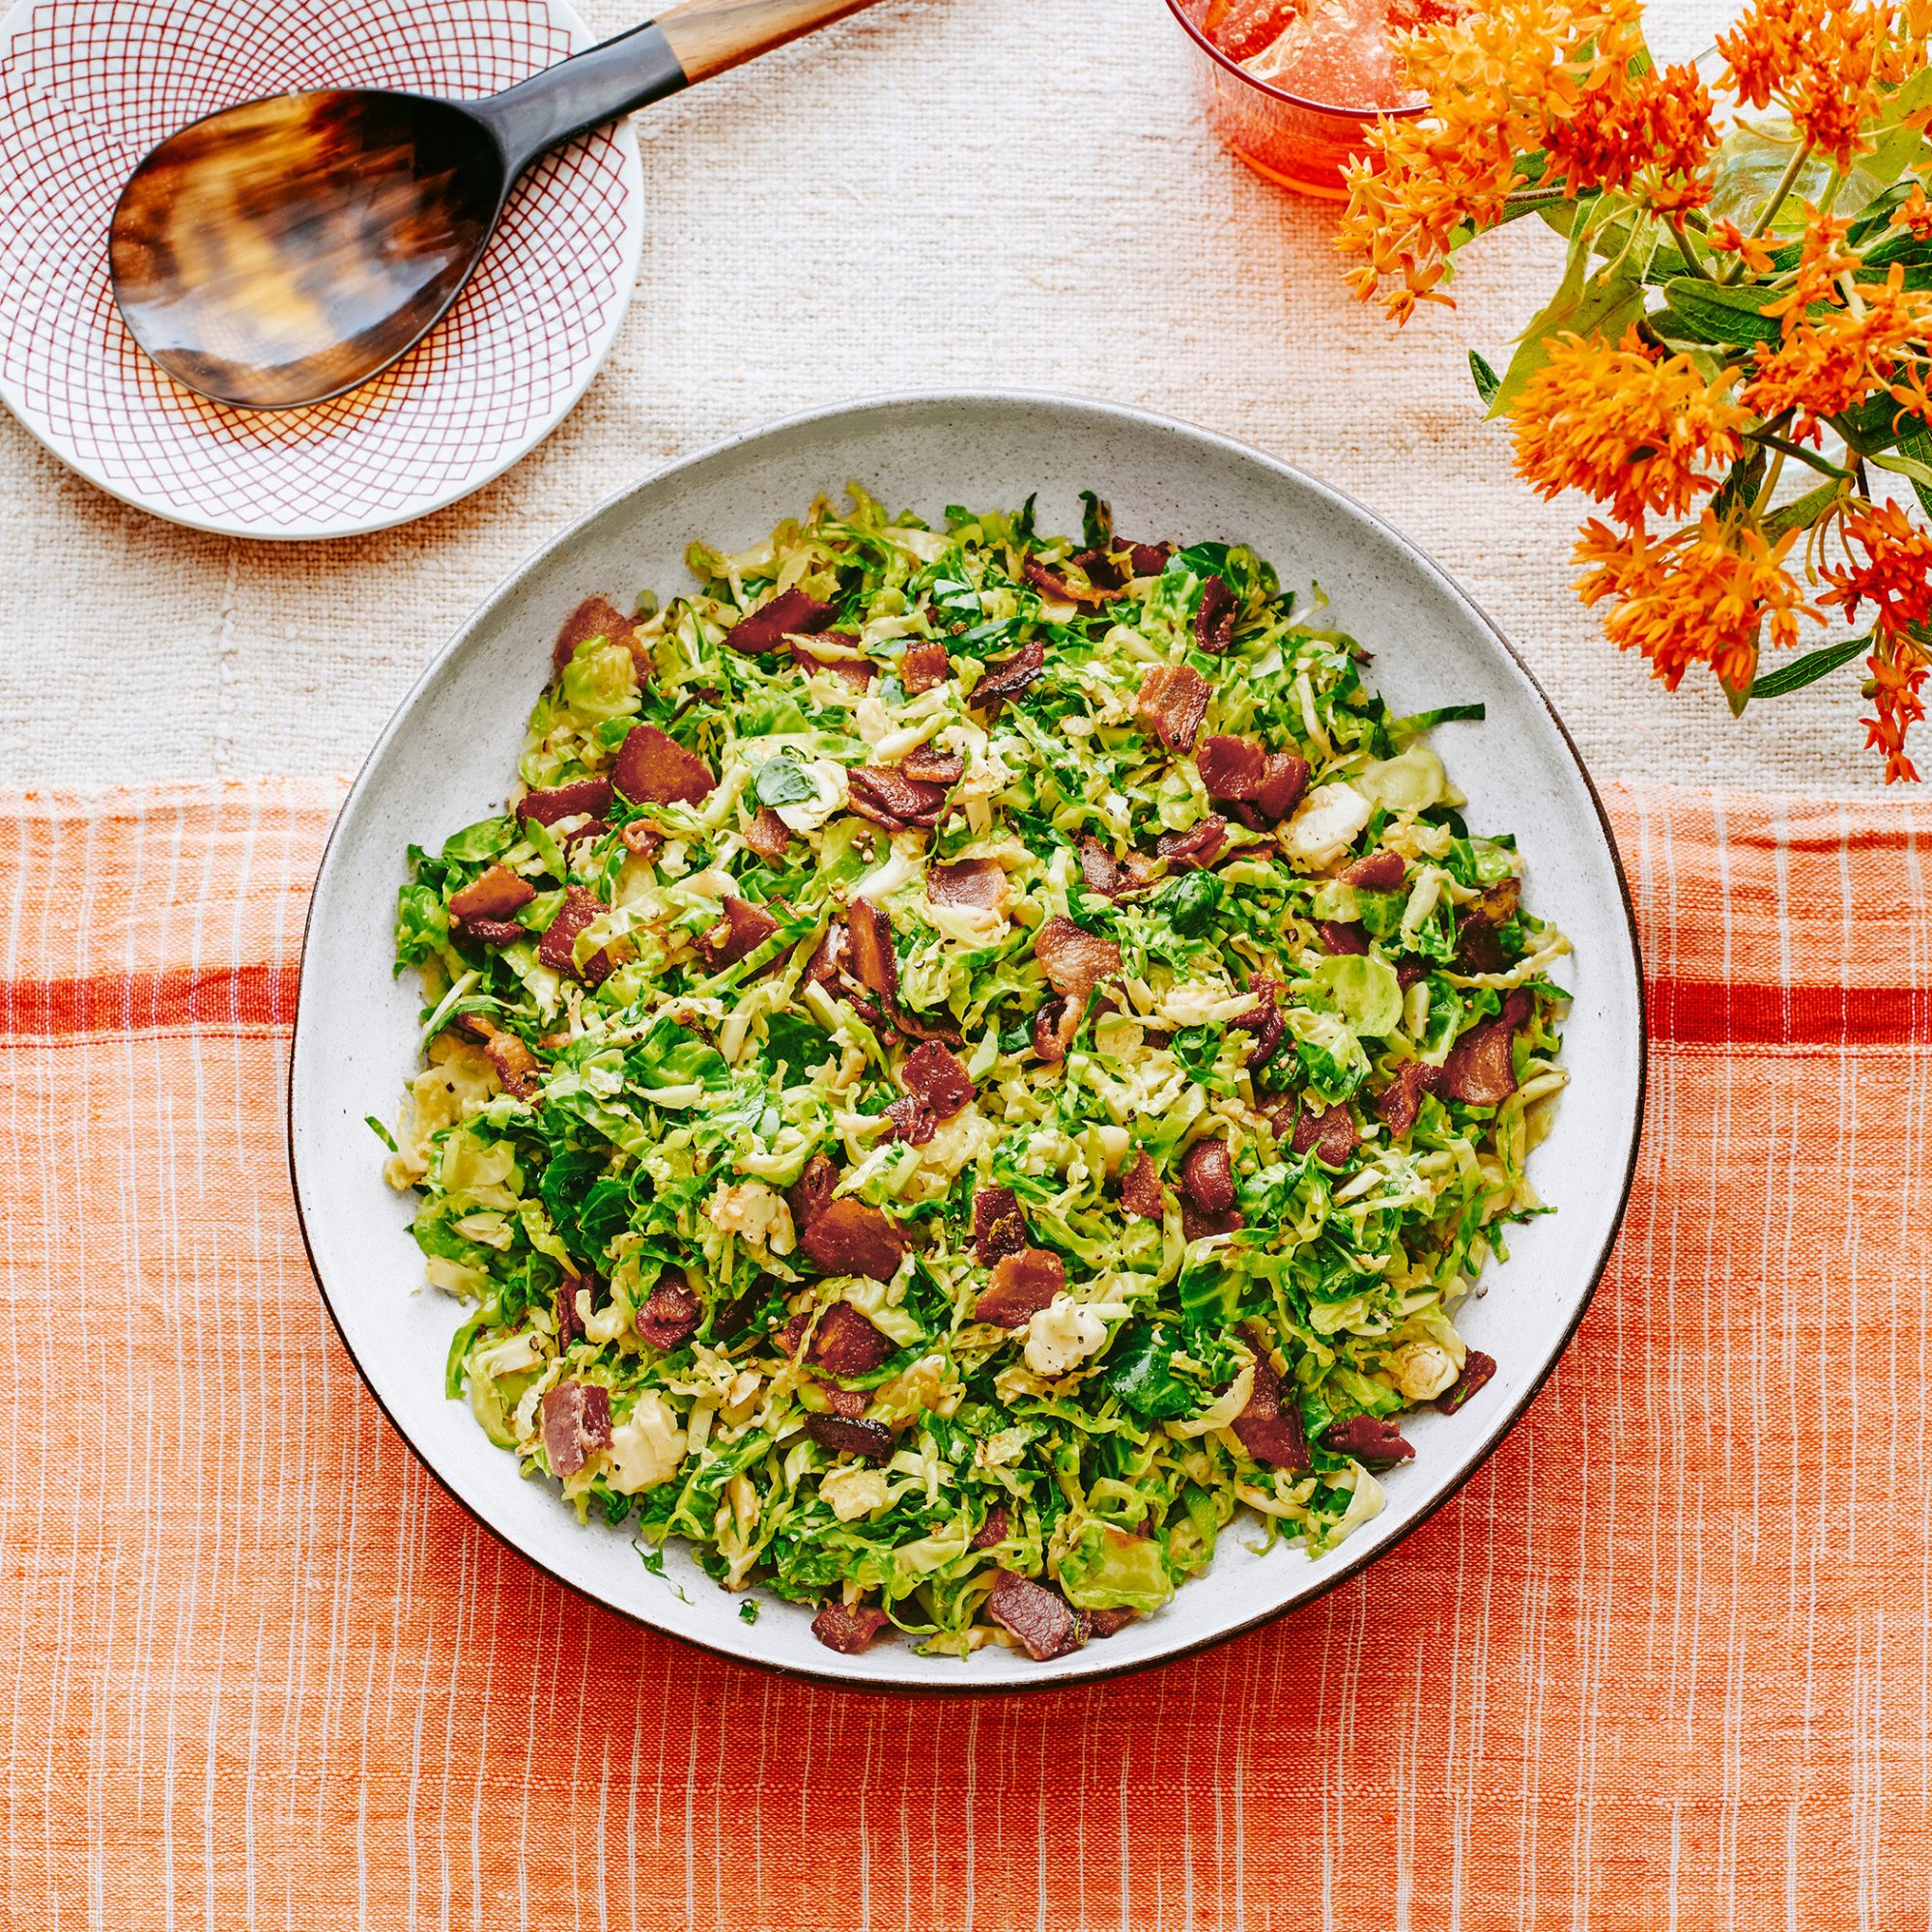 jacque pepin's fricassee brussels sprouts